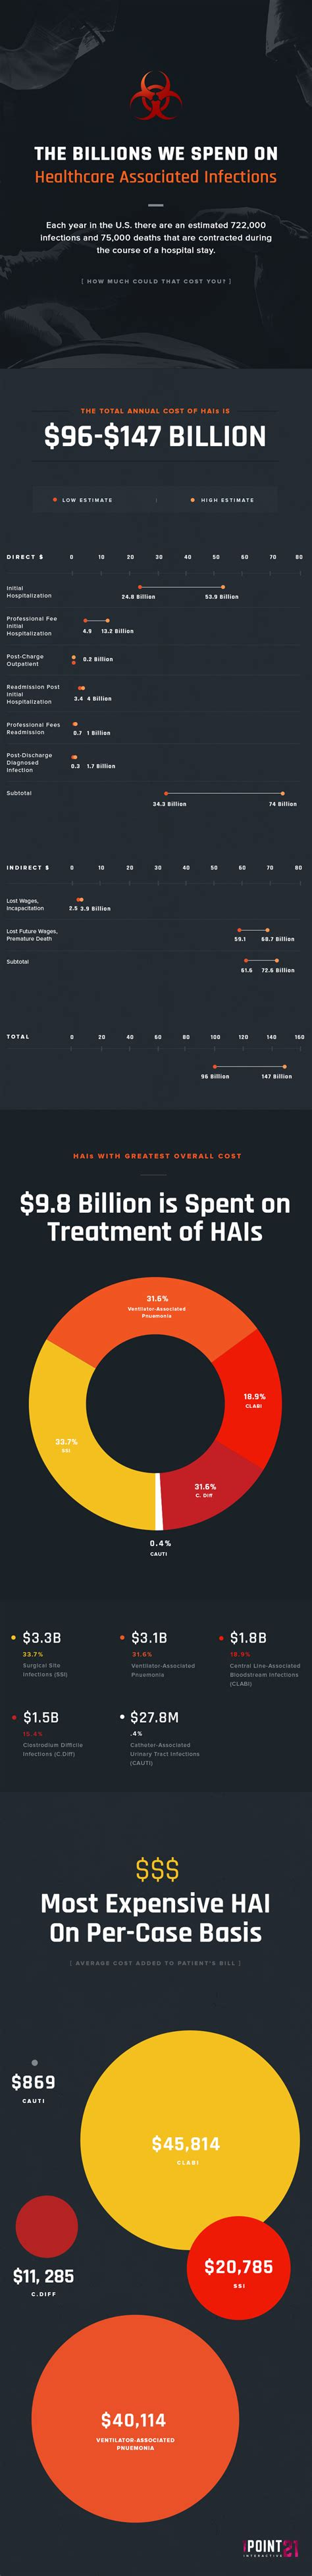 annual cost of a annual cost of healthcare associated infections hais